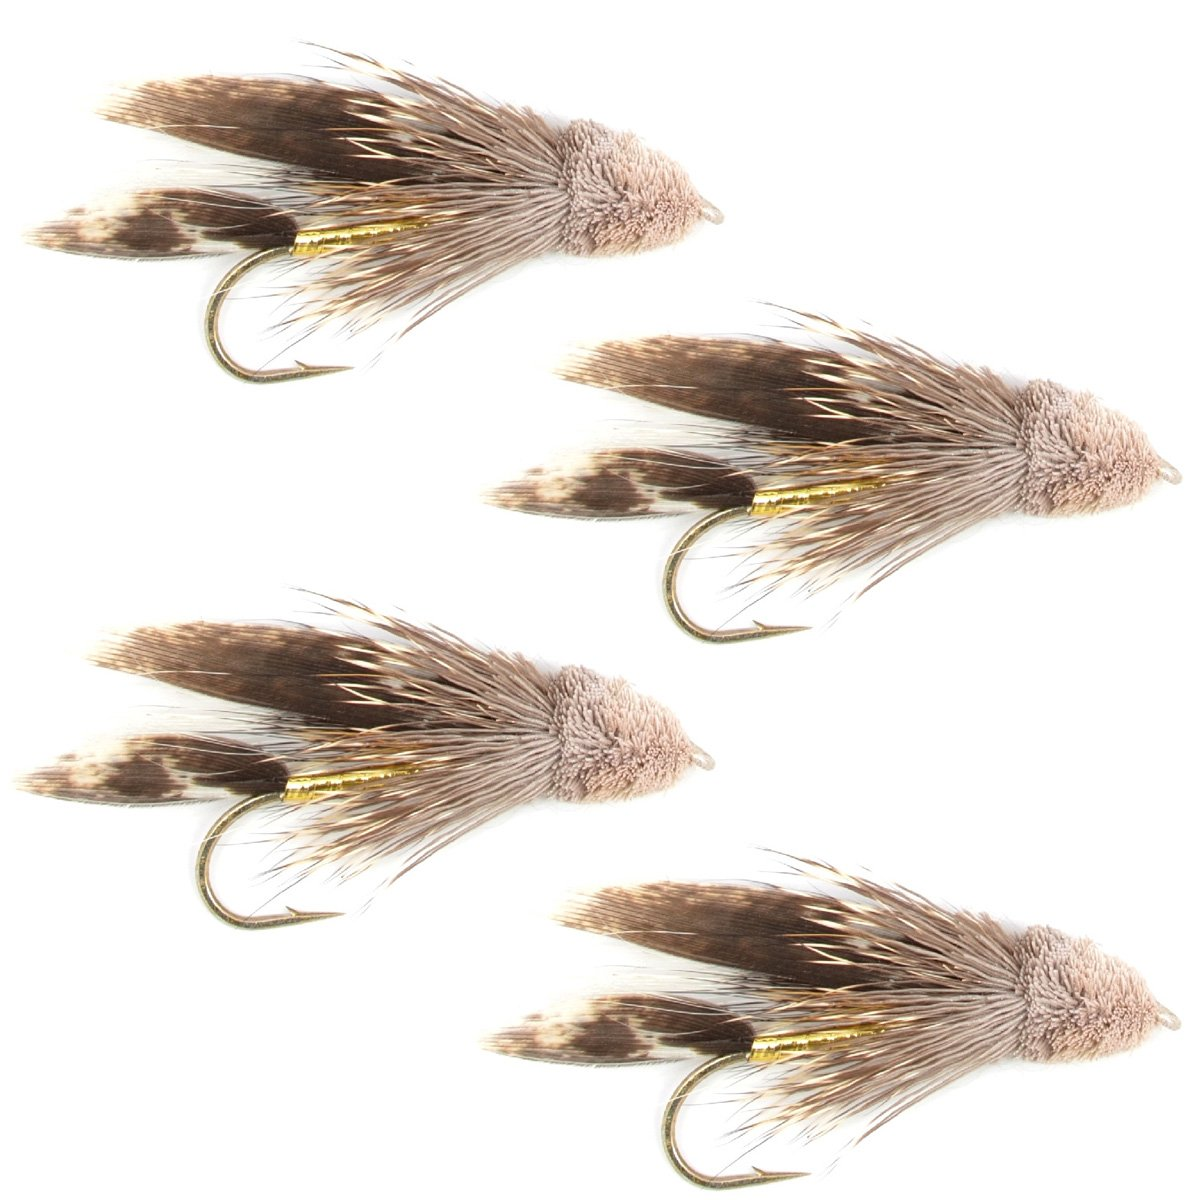 The Fly Fishing Place Muddler Minnow Fly Fishing Flies - Classic Bass and Trout Streamers - Set of 4 Flies Hook Size 4